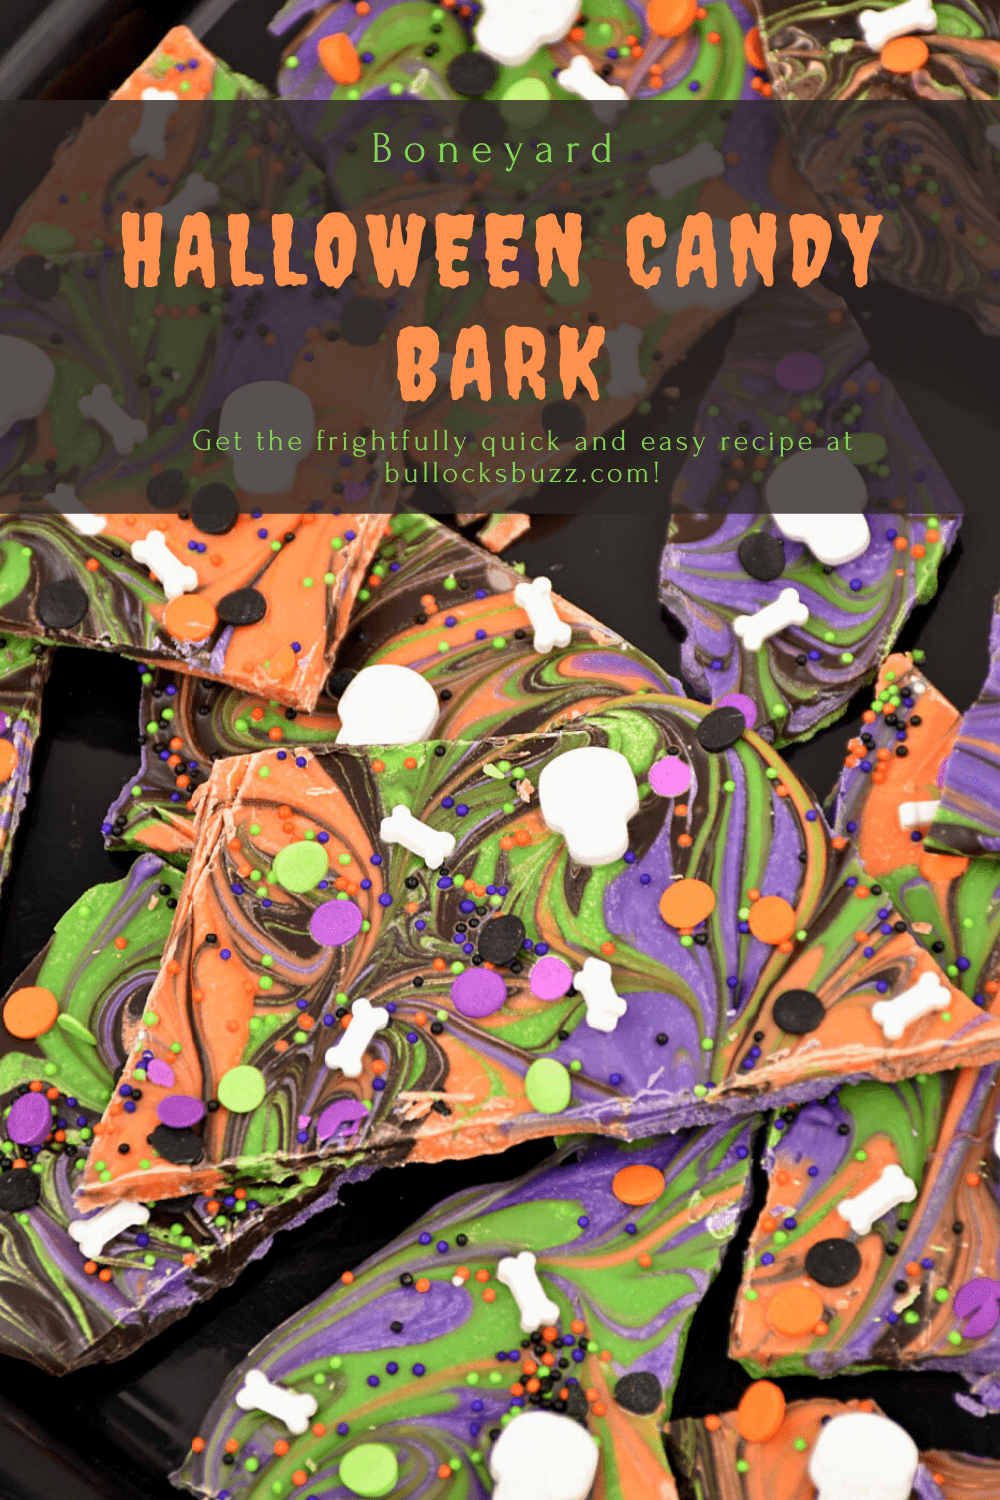 Add a little sweetness to your spooky Halloween celebration with this no-bake Boneyard Halloween Candy Bark. This swirled Halloween Candy Bark recipe is so easy to make, it's scary! Get this Halloween Bark recipe on the Bullock's Buzz blog.